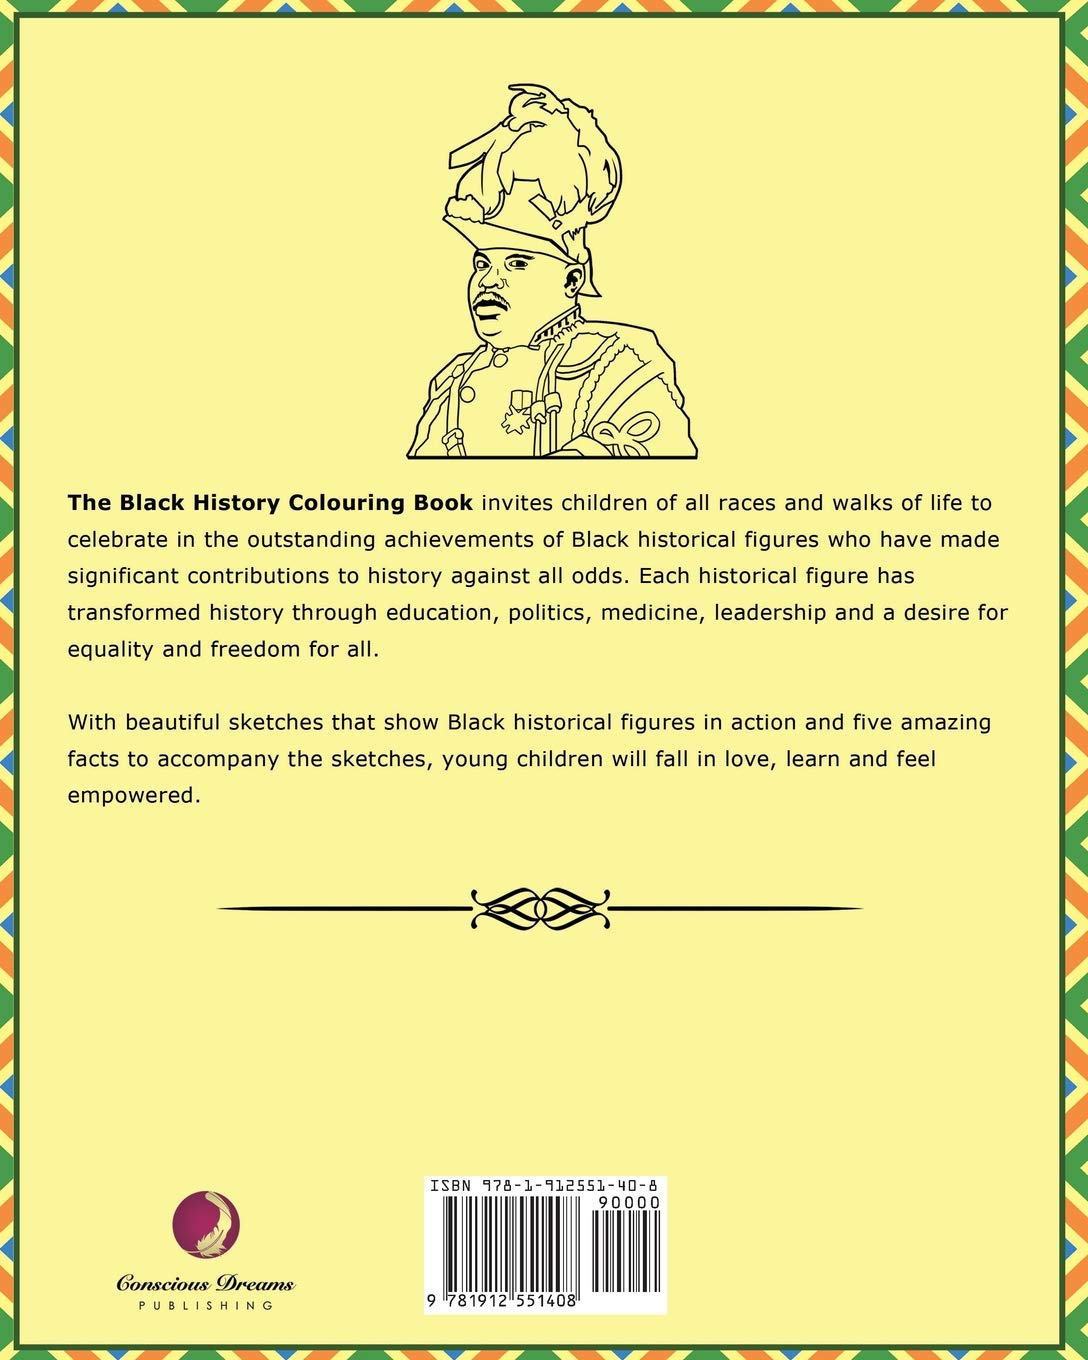 The Black History Colouring Book: Volume 1 (The Black History Colouring Book series)